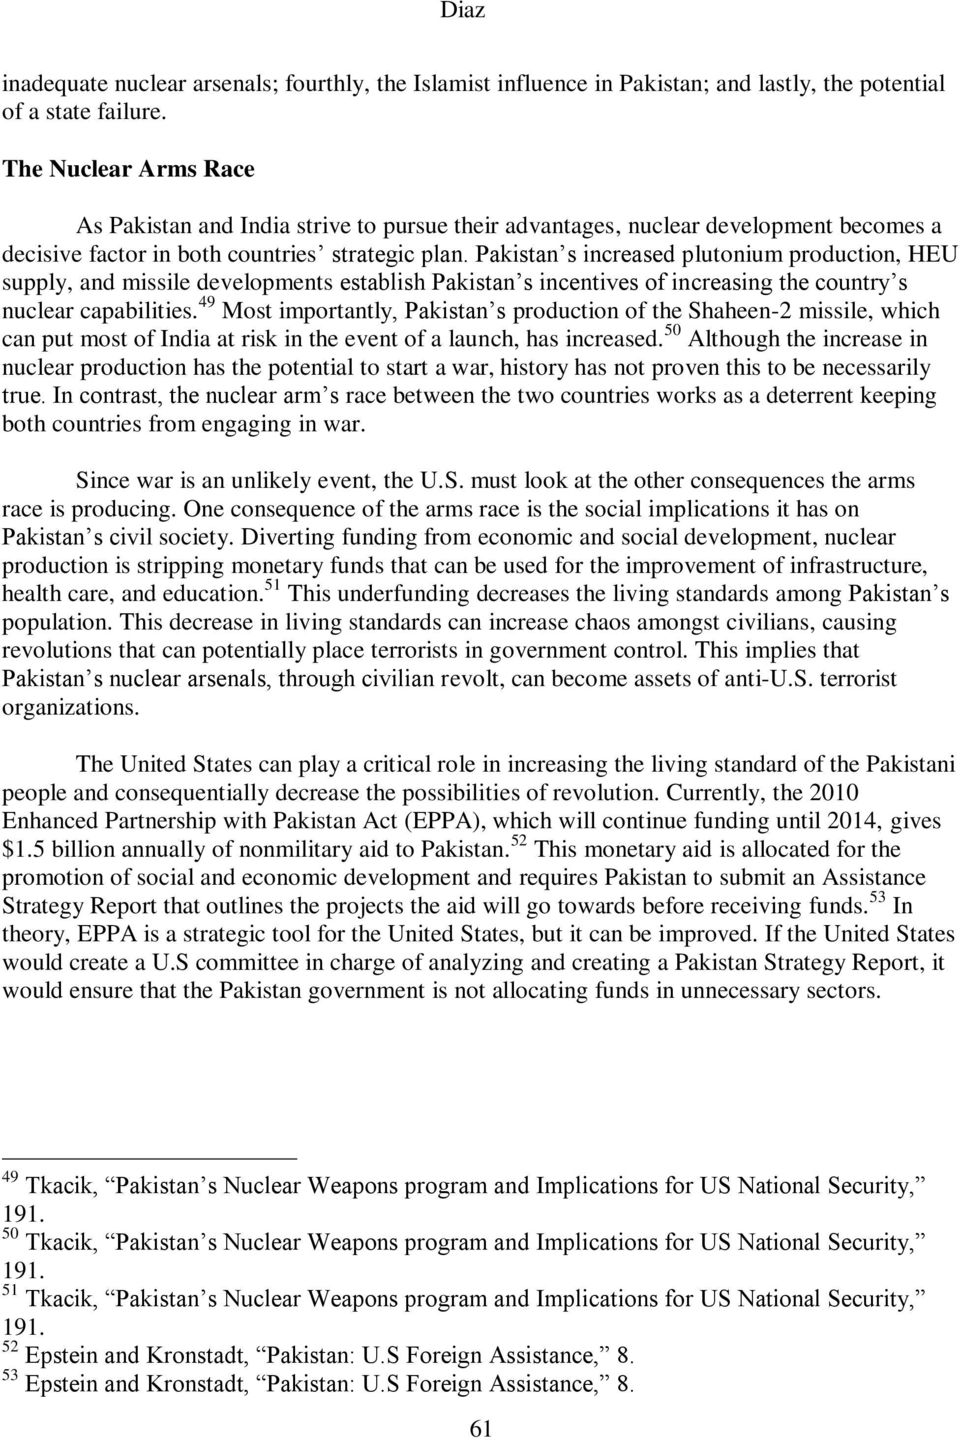 Pakistan s increased plutonium production, HEU supply, and missile developments establish Pakistan s incentives of increasing the country s nuclear capabilities.